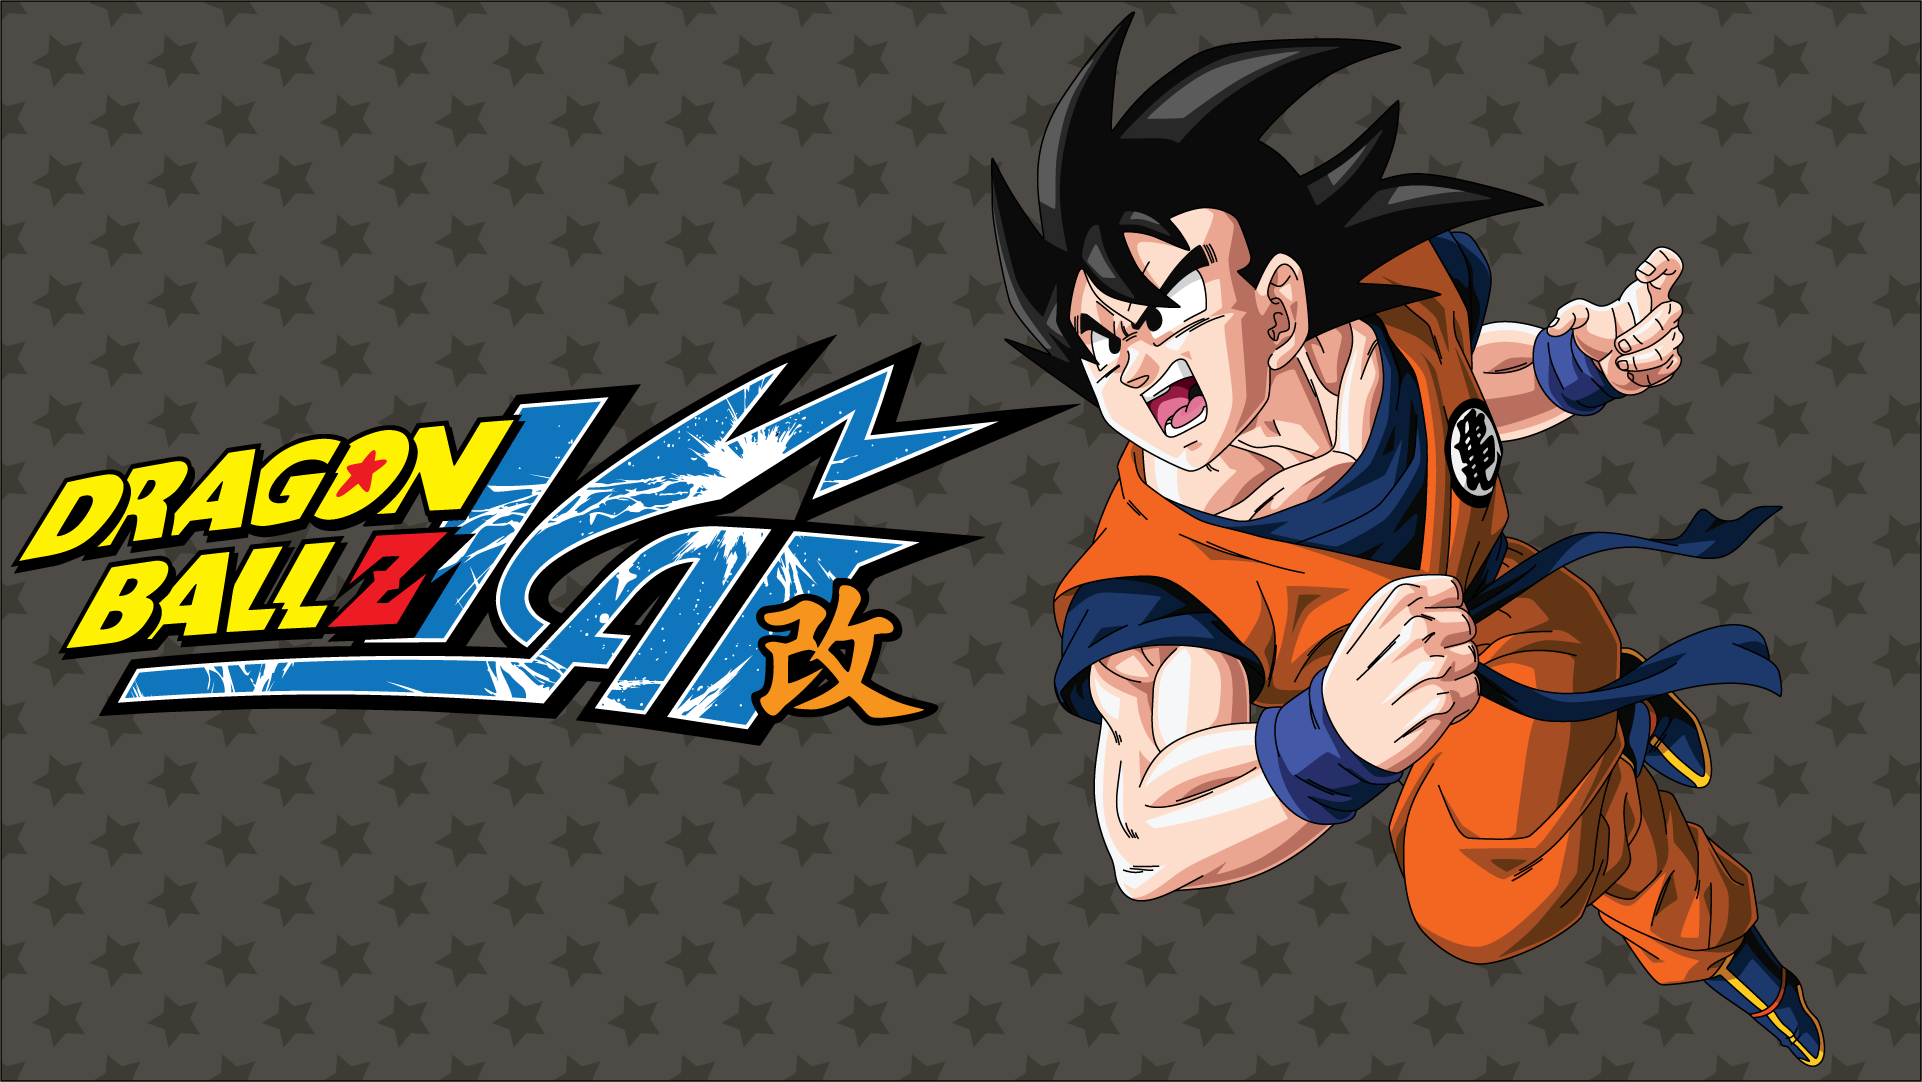 Dragon Ball Z Kai Wallpaper By Havoc3001 On Deviantart